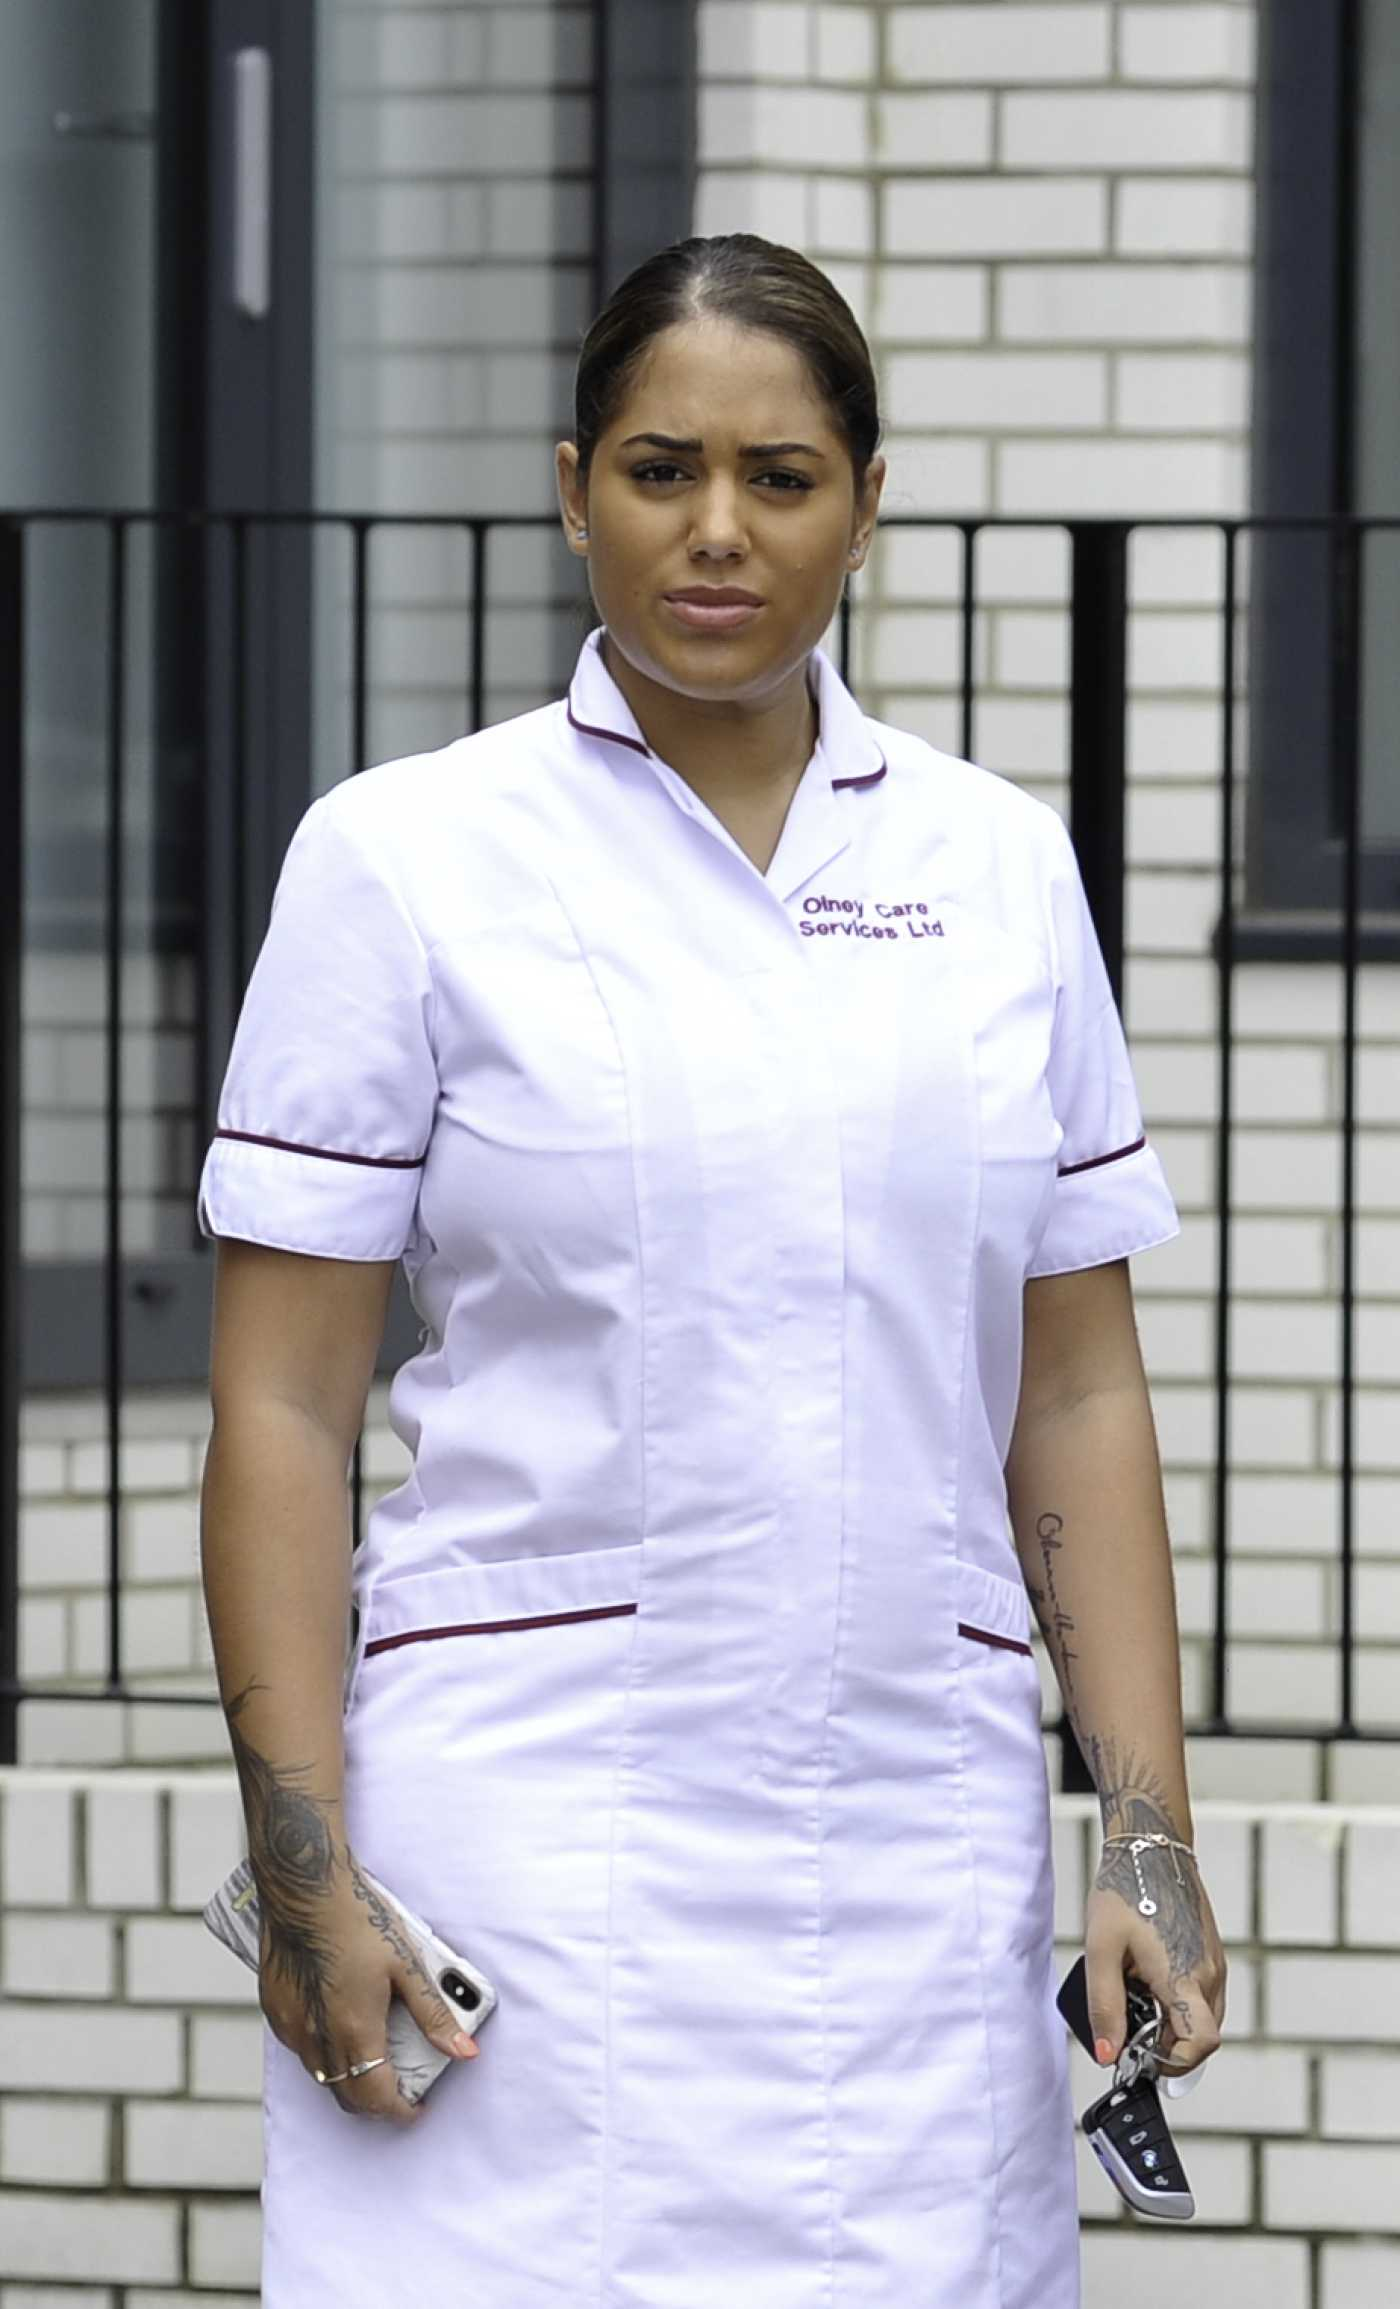 Malin Andersson Leaves Her Nightshift Working as a Keyworker Nurse in a Care Home in London 05/27/2020